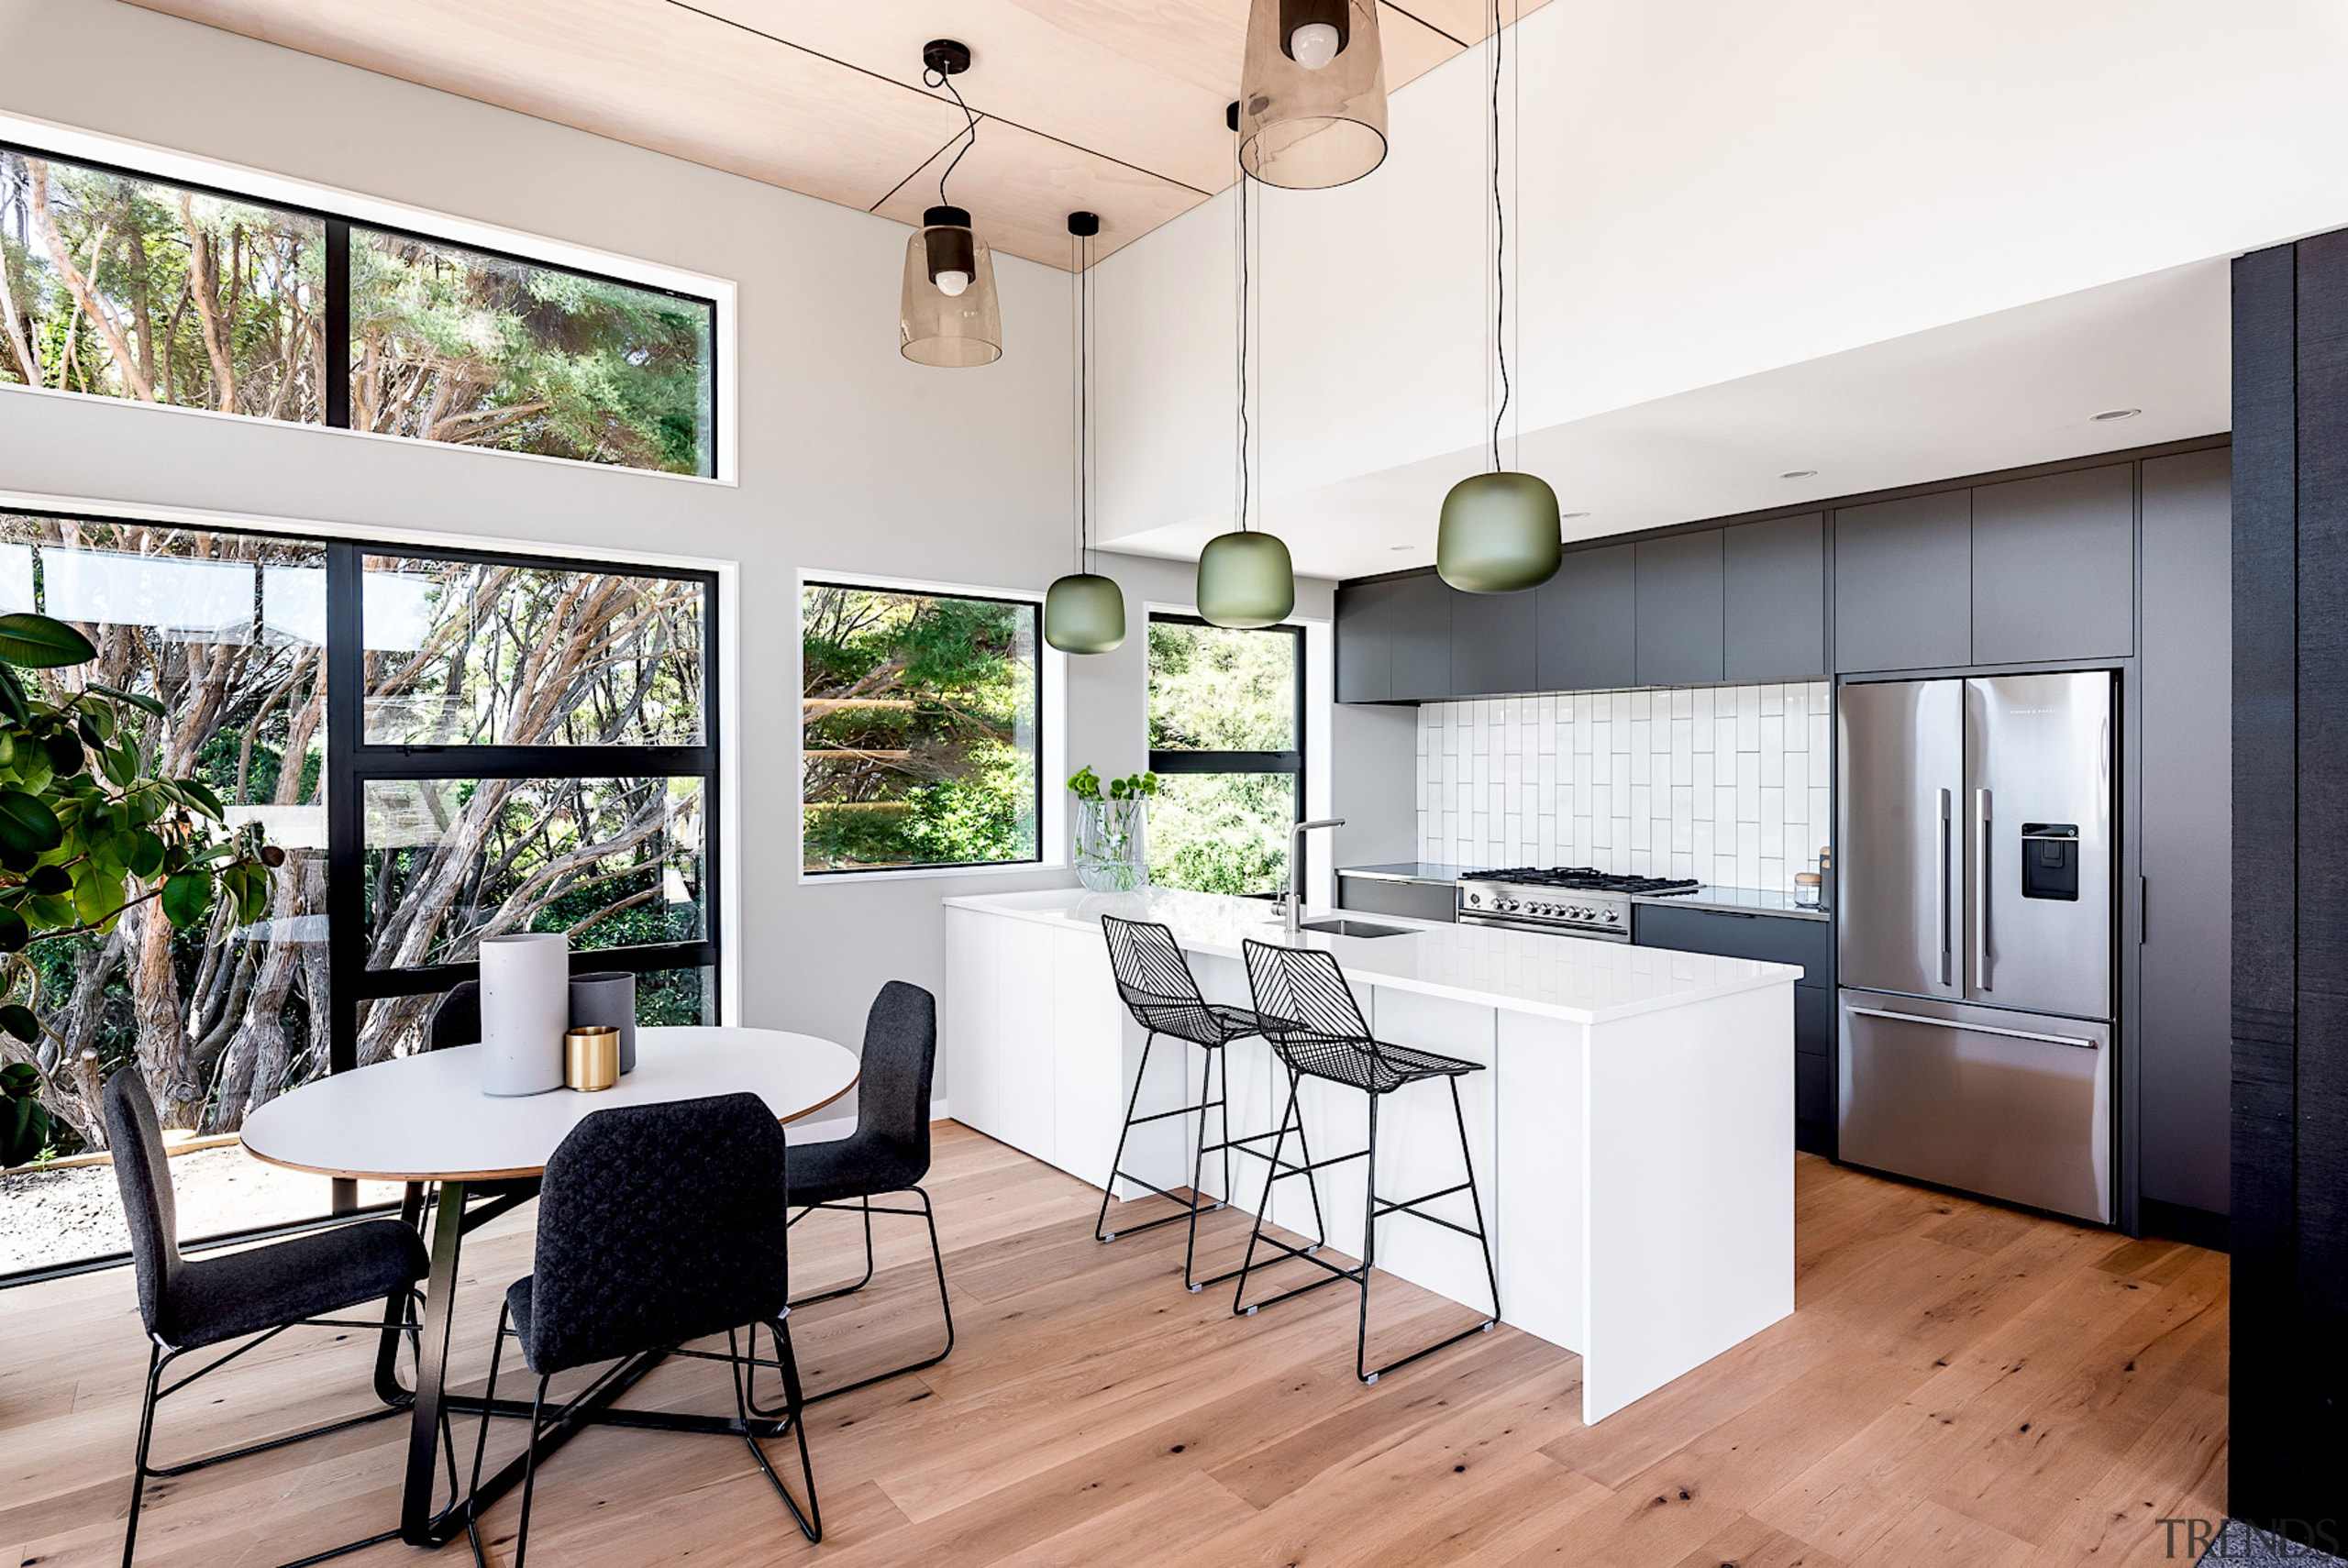 Citta pendants set off the dining and kitchen